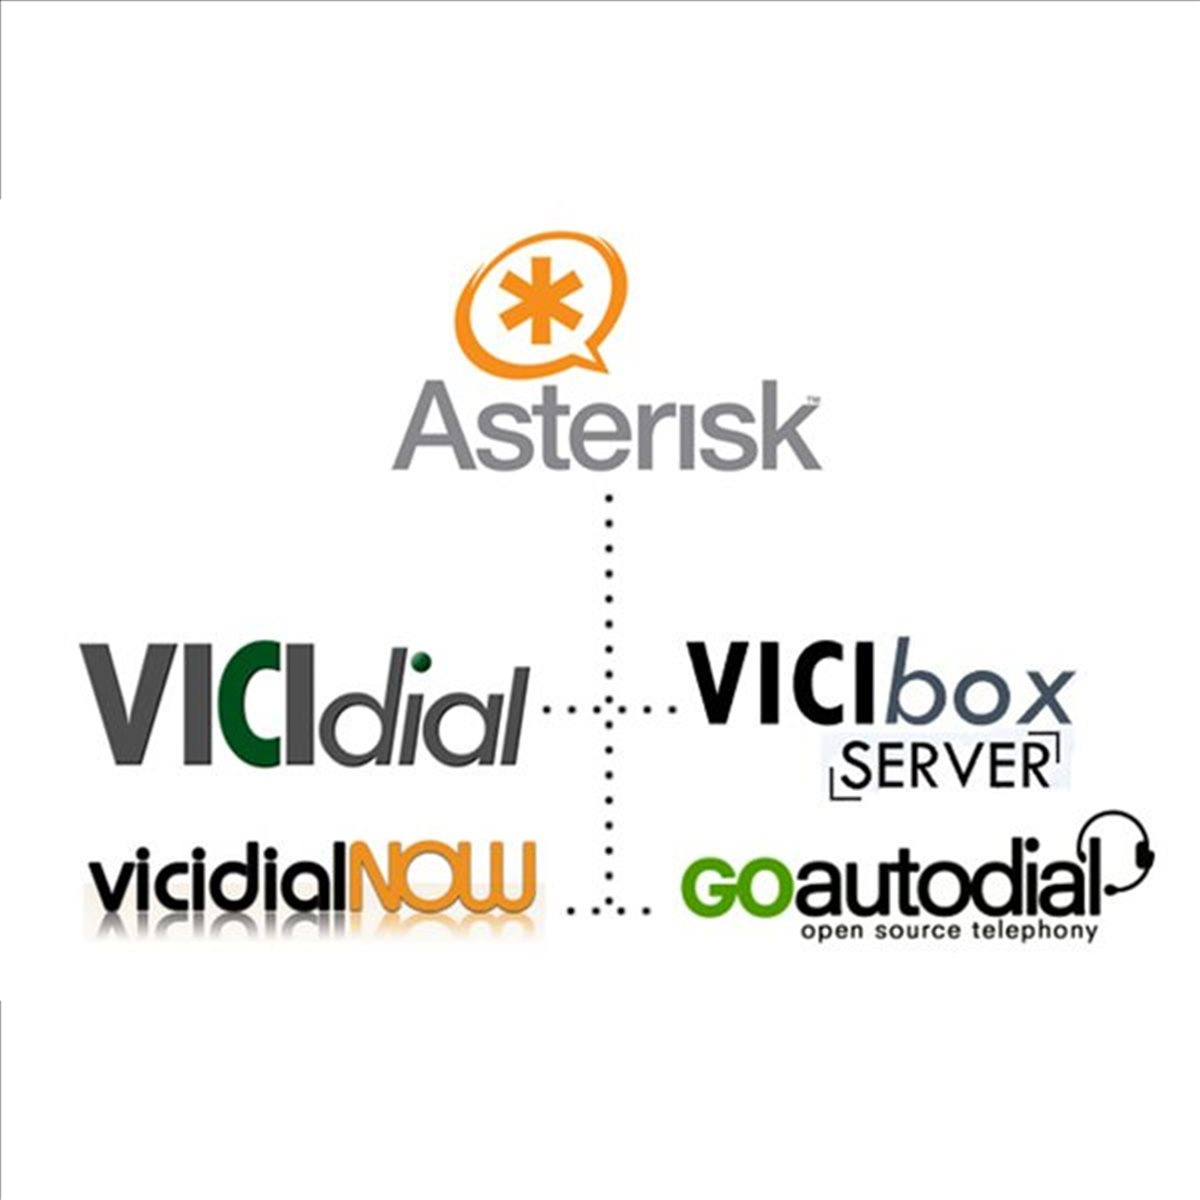 What Ports To Open For Vicidial Vicibox Asterisk